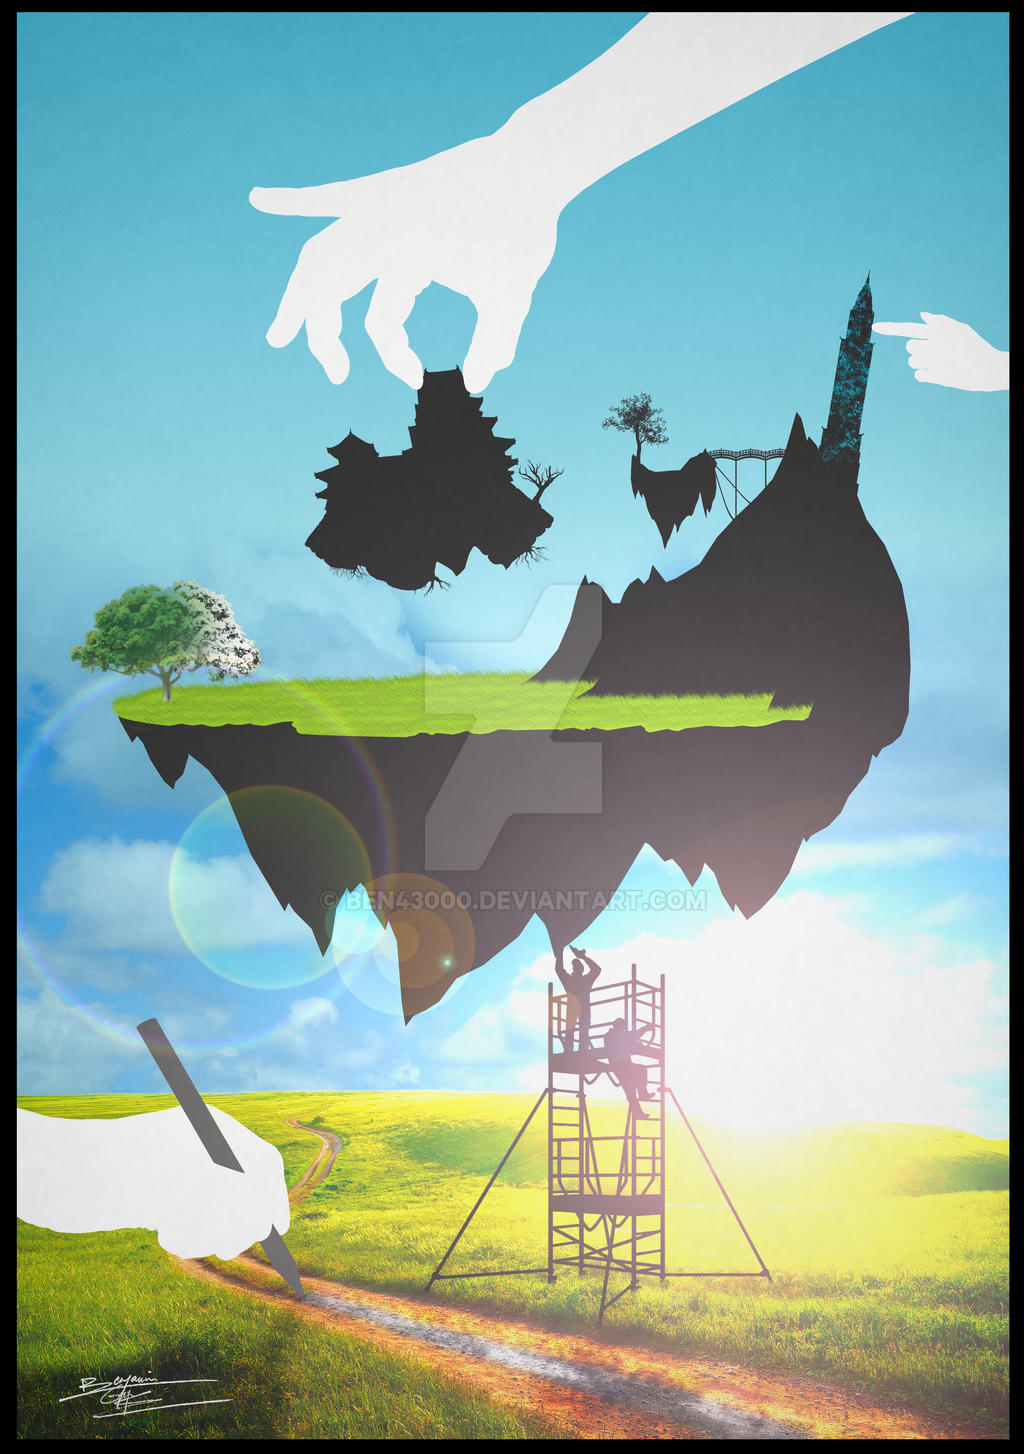 Create your world by ben43000 on deviantart - Create your world ...